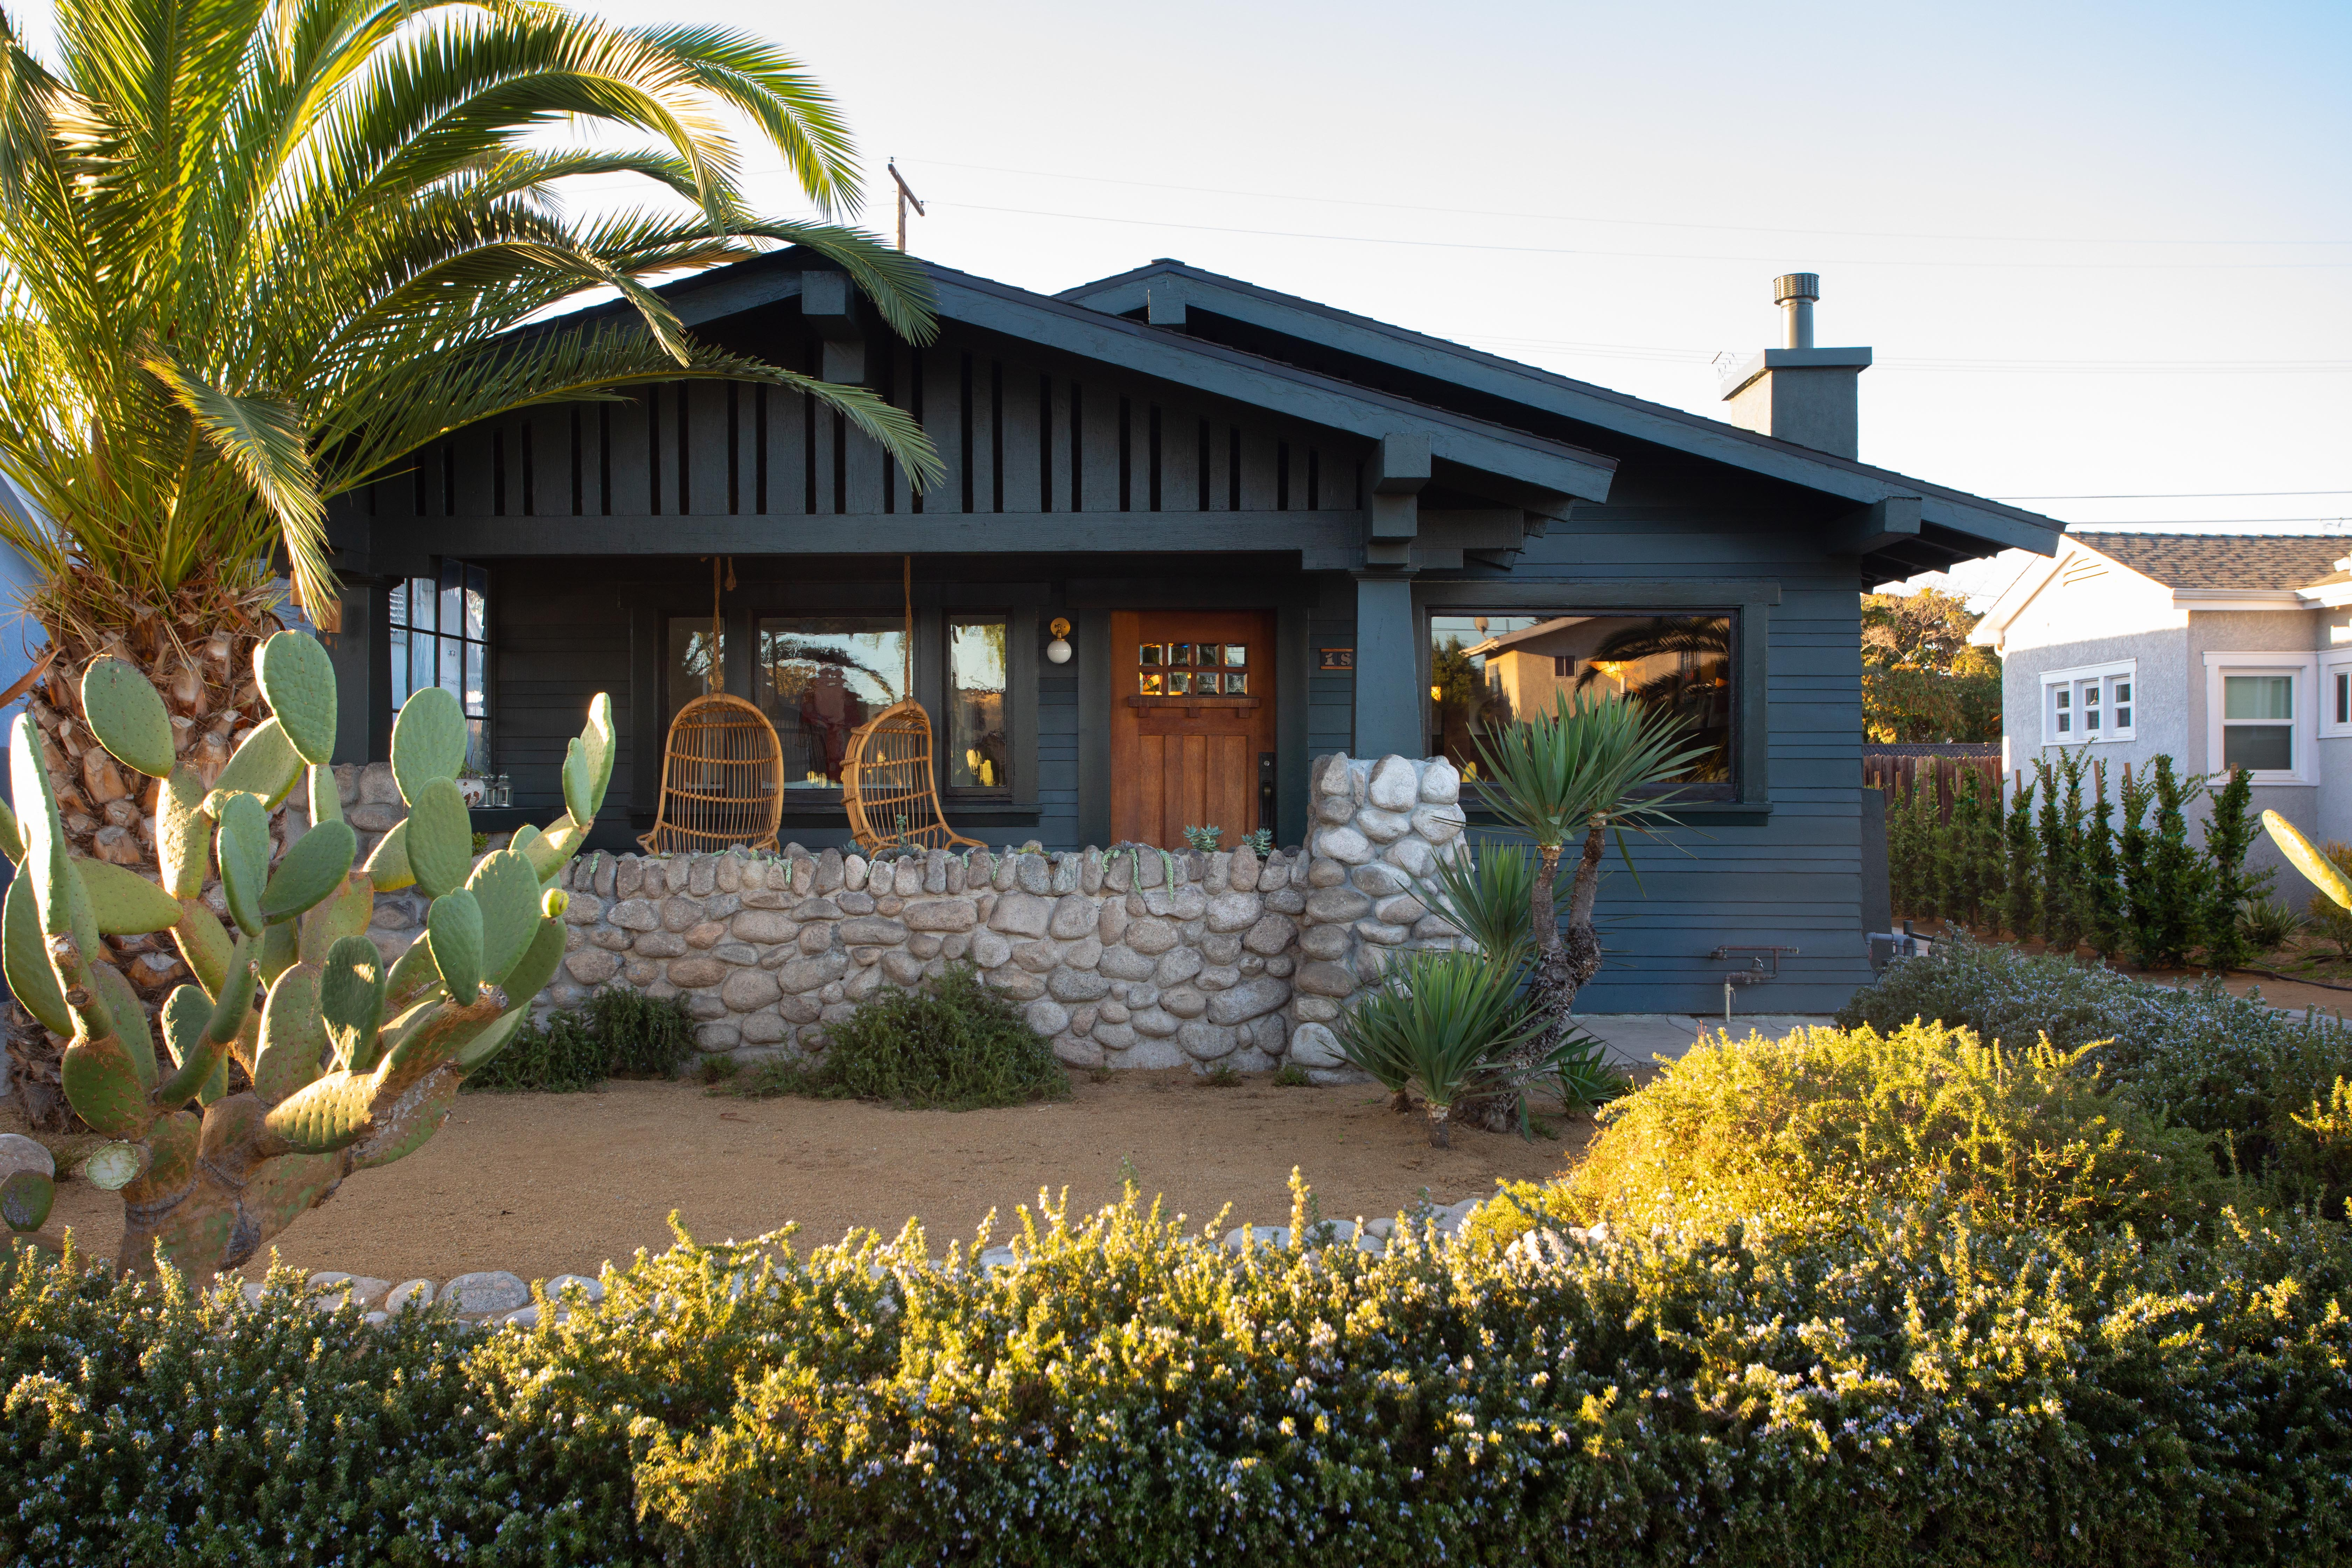 Dark gray-blue house with twin roofs surrounded by plants.